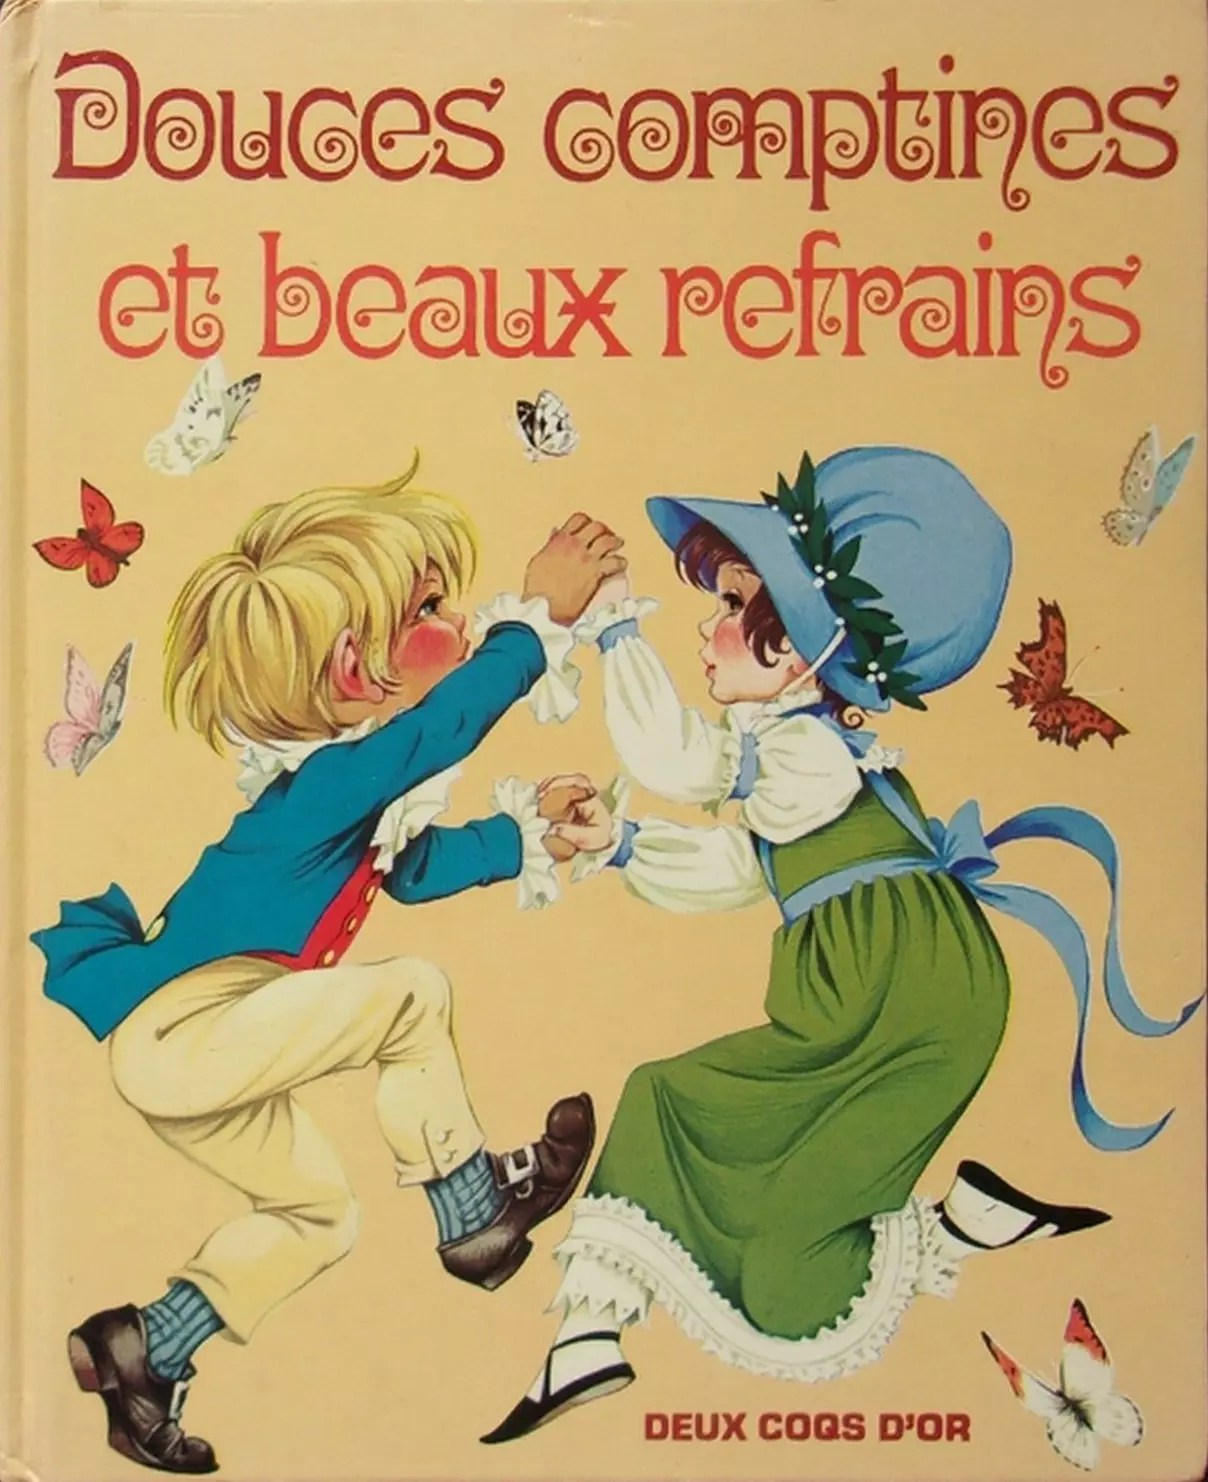 GJT French Douces Comptines new gift book of nursery rhymes